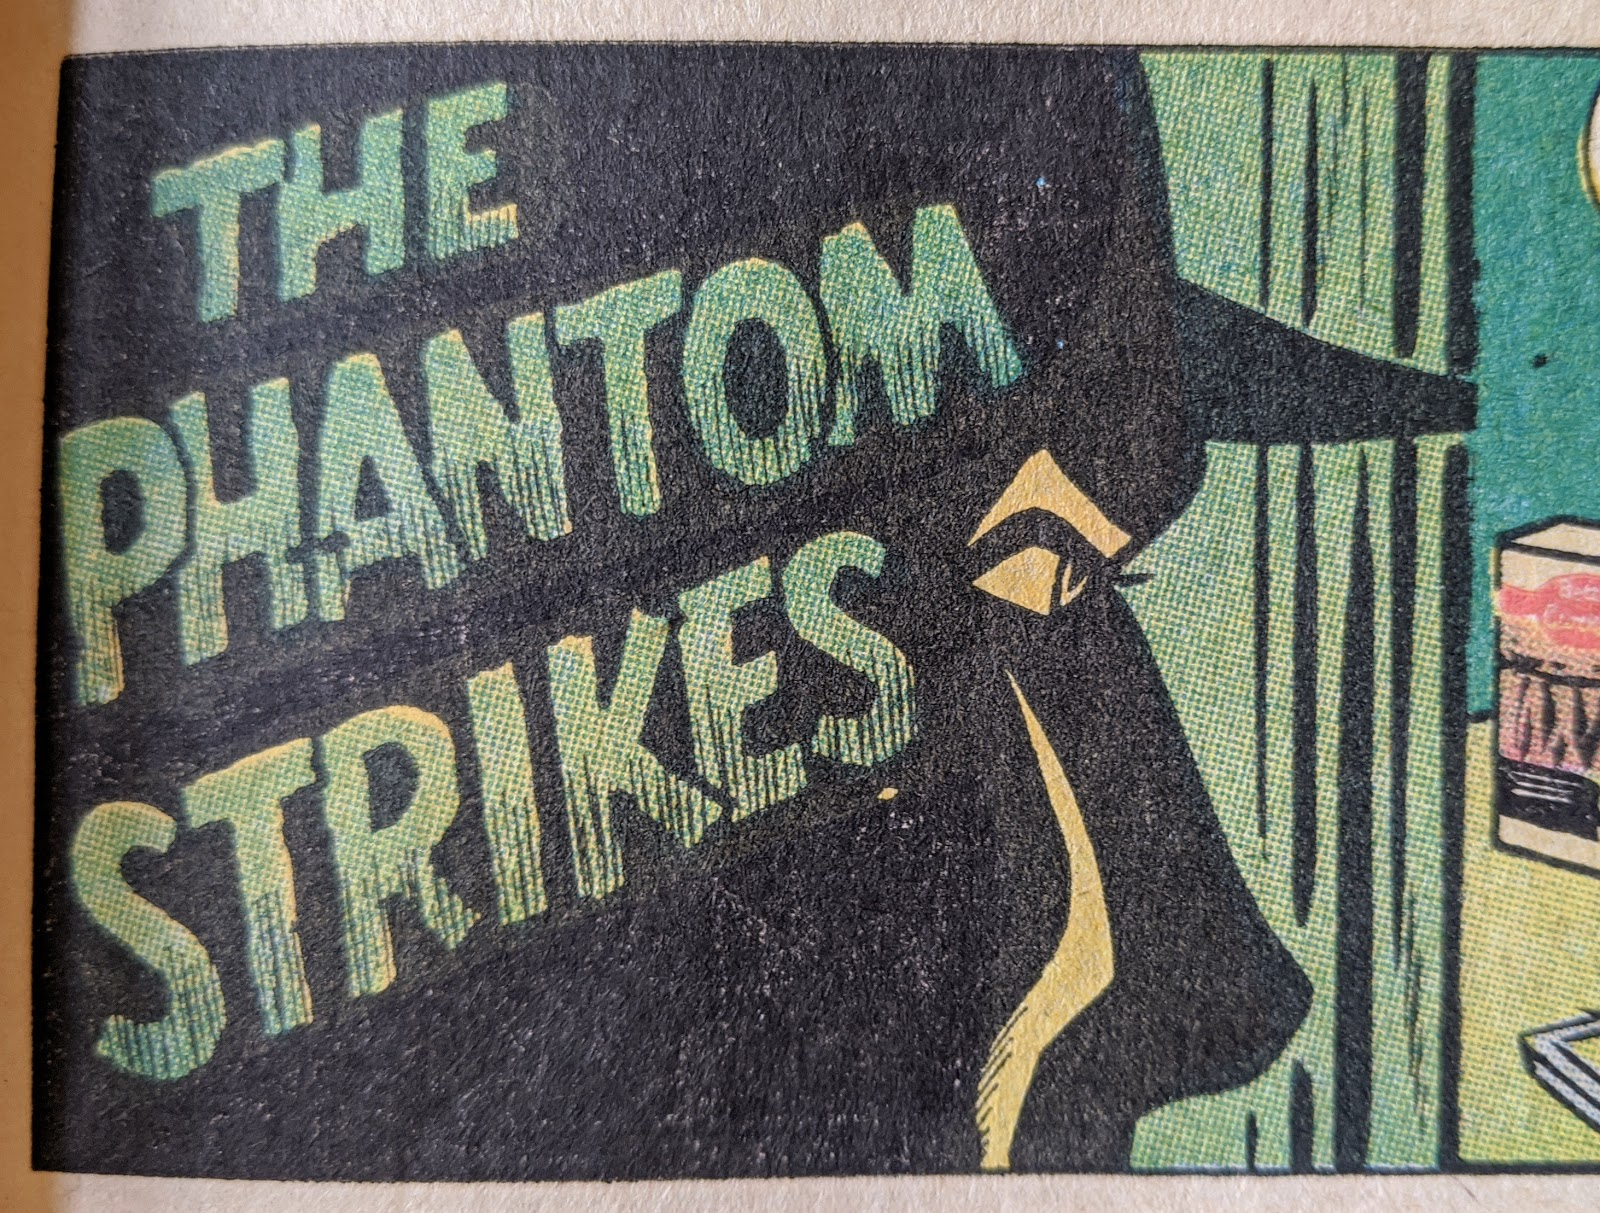 image of vintage comic book panel art